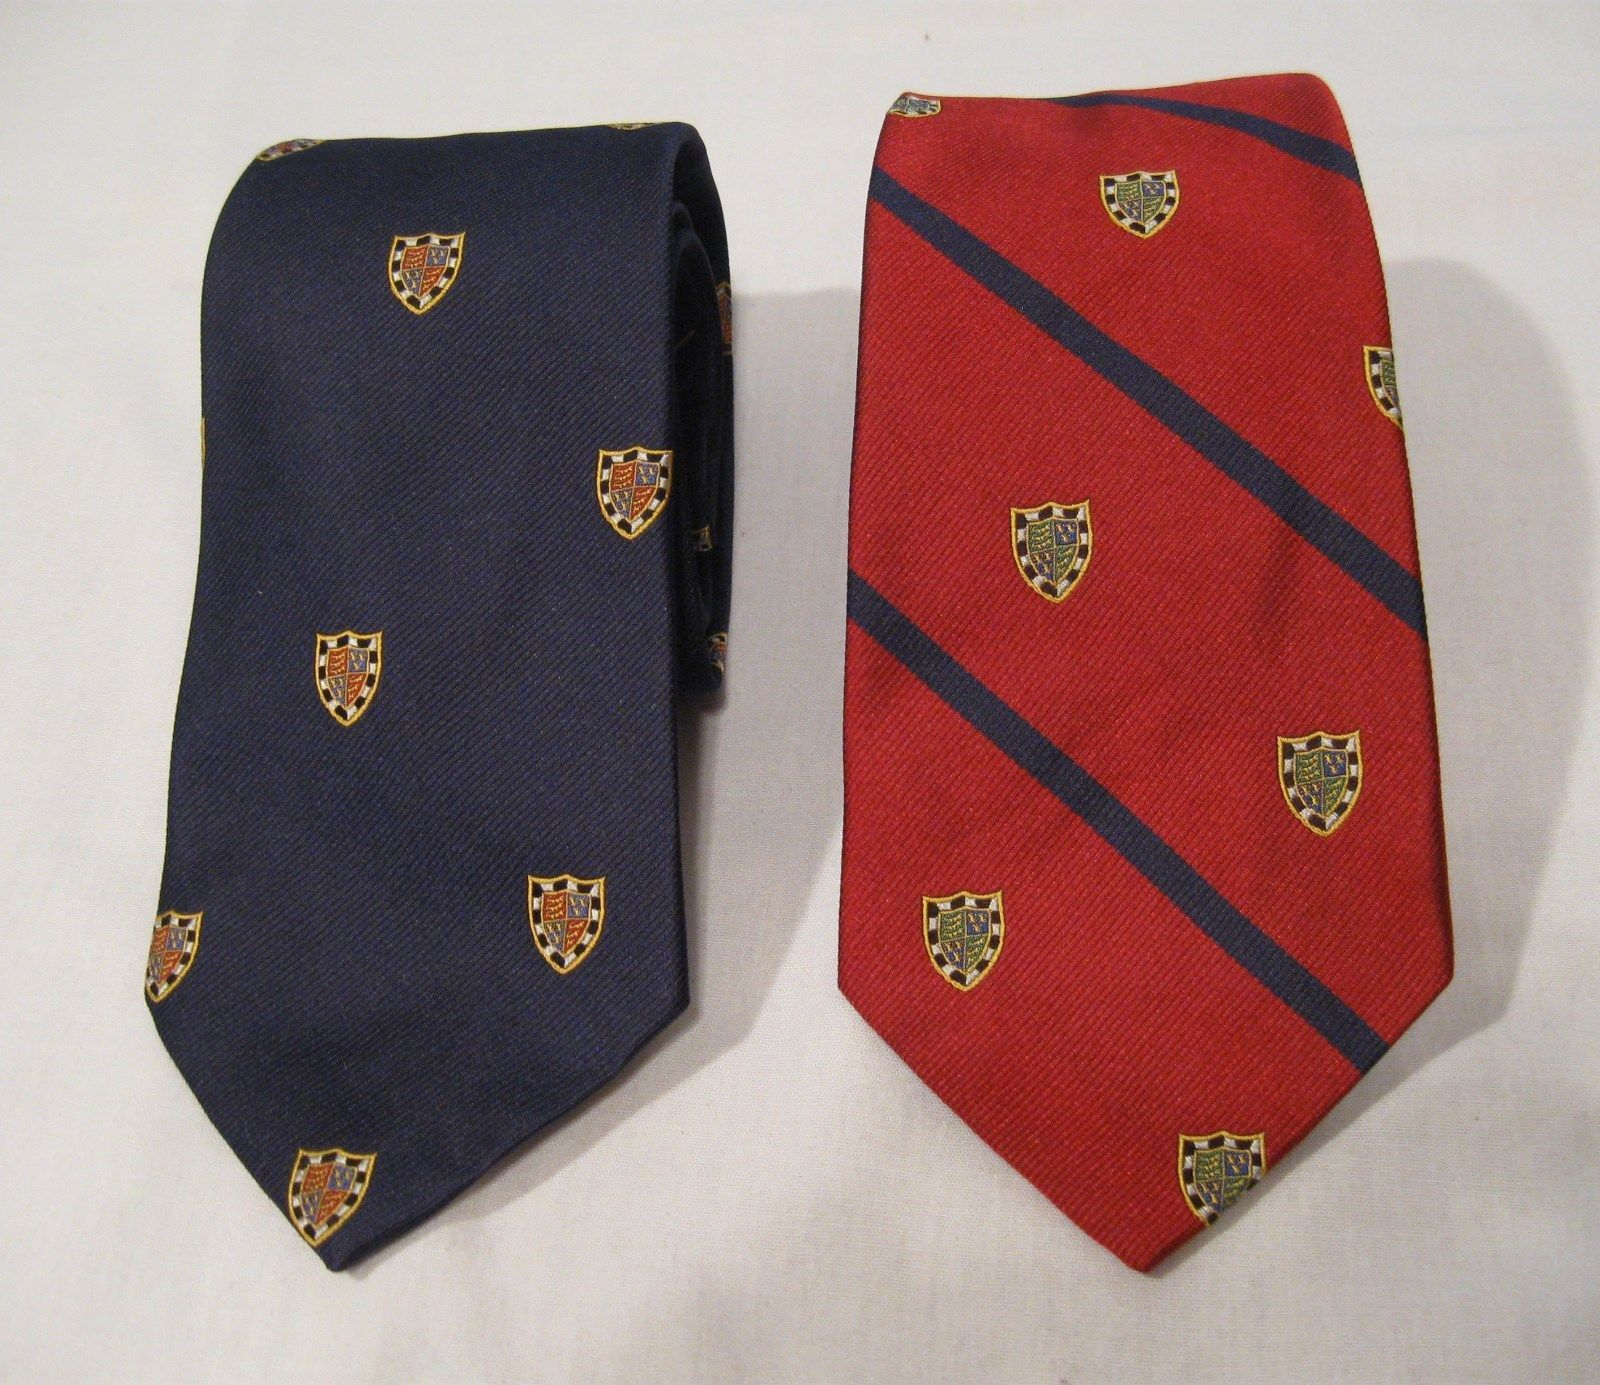 0dd4e8ccb Polo Ralph Lauren 100% Silk Tie NWT Red or Navy with Crest | Rob's ...